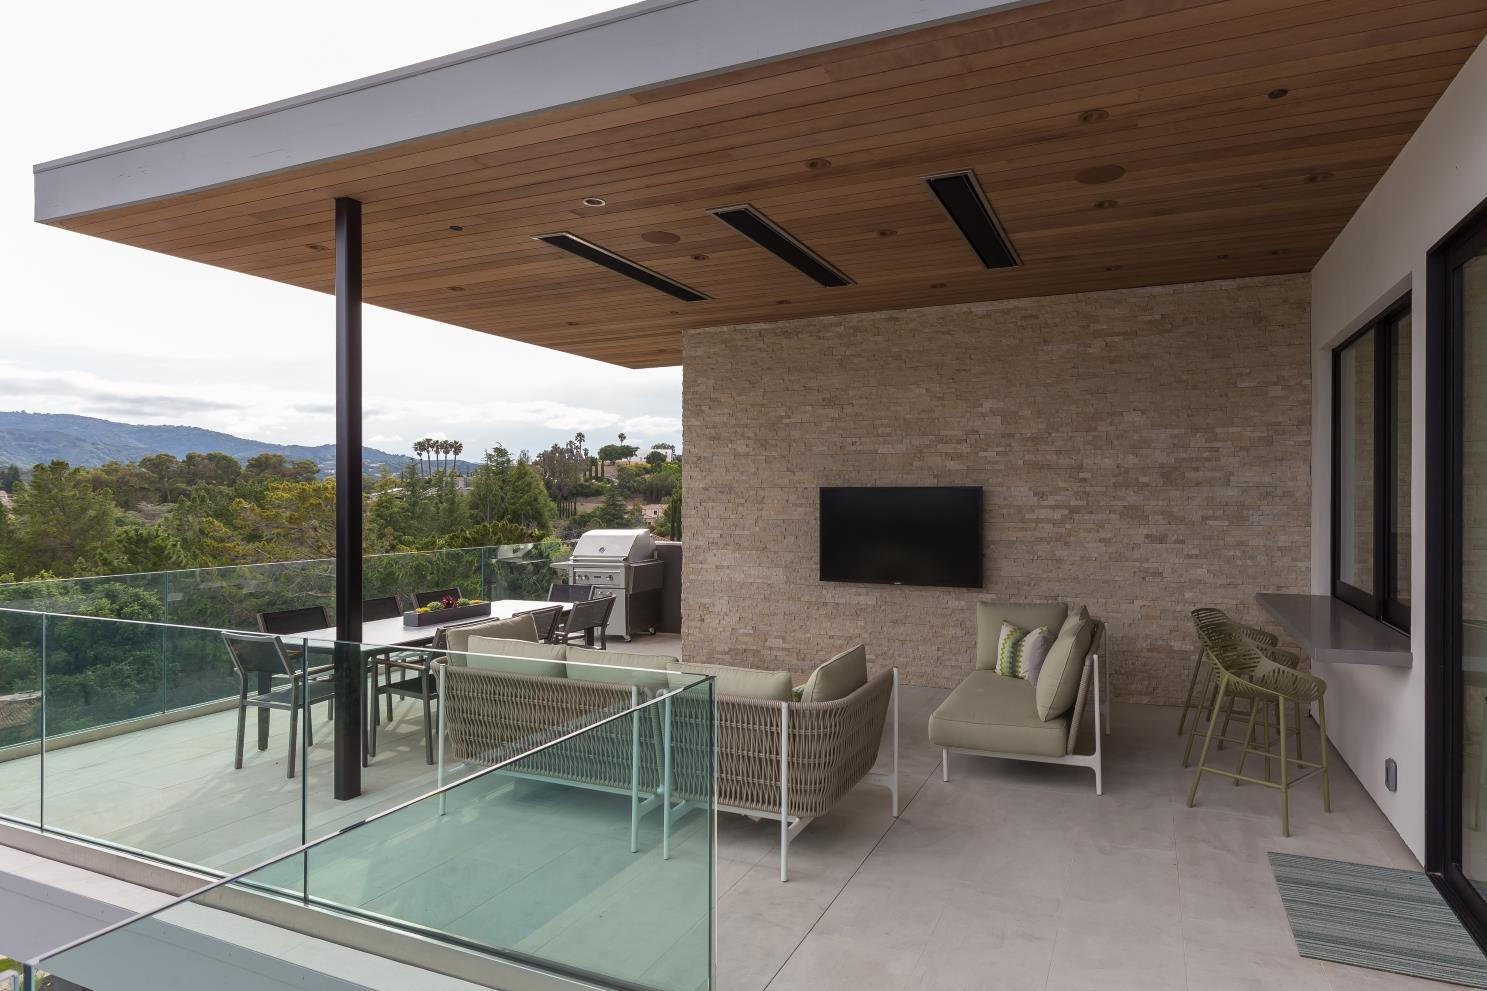 Top Exterior and Interior Architects Work in Los Altos Hills